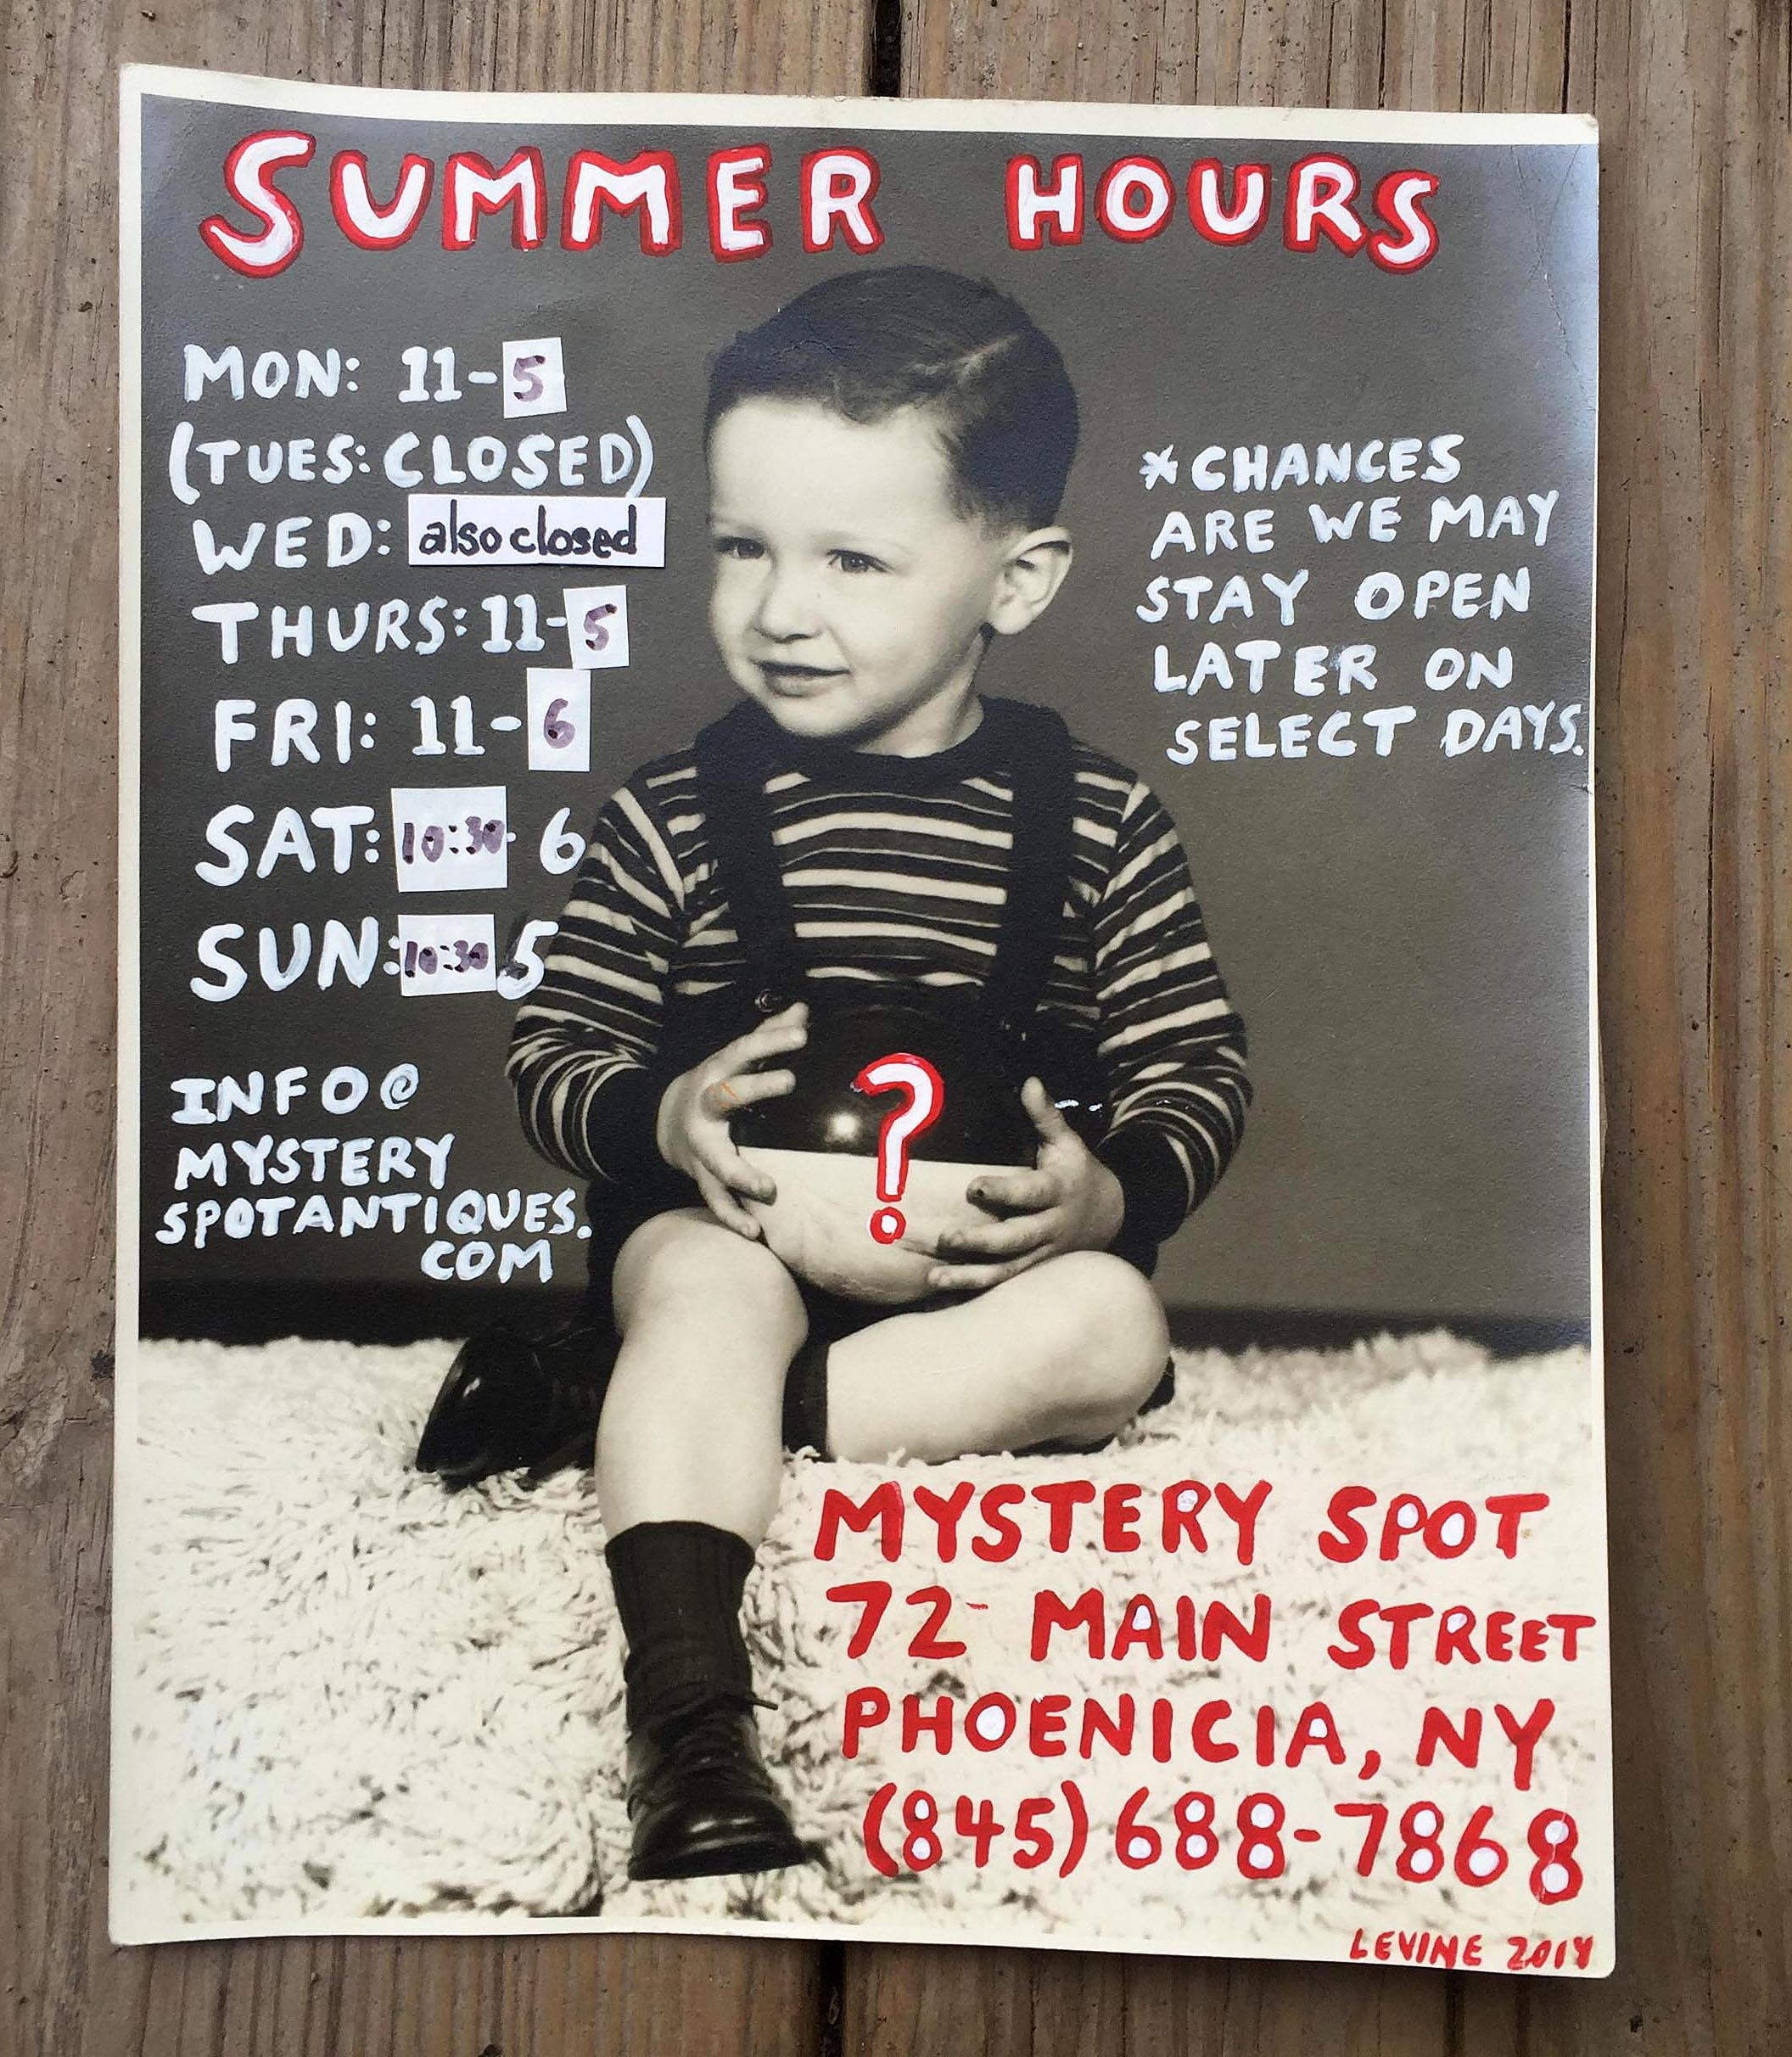 spot summer hours 2016 copy 3